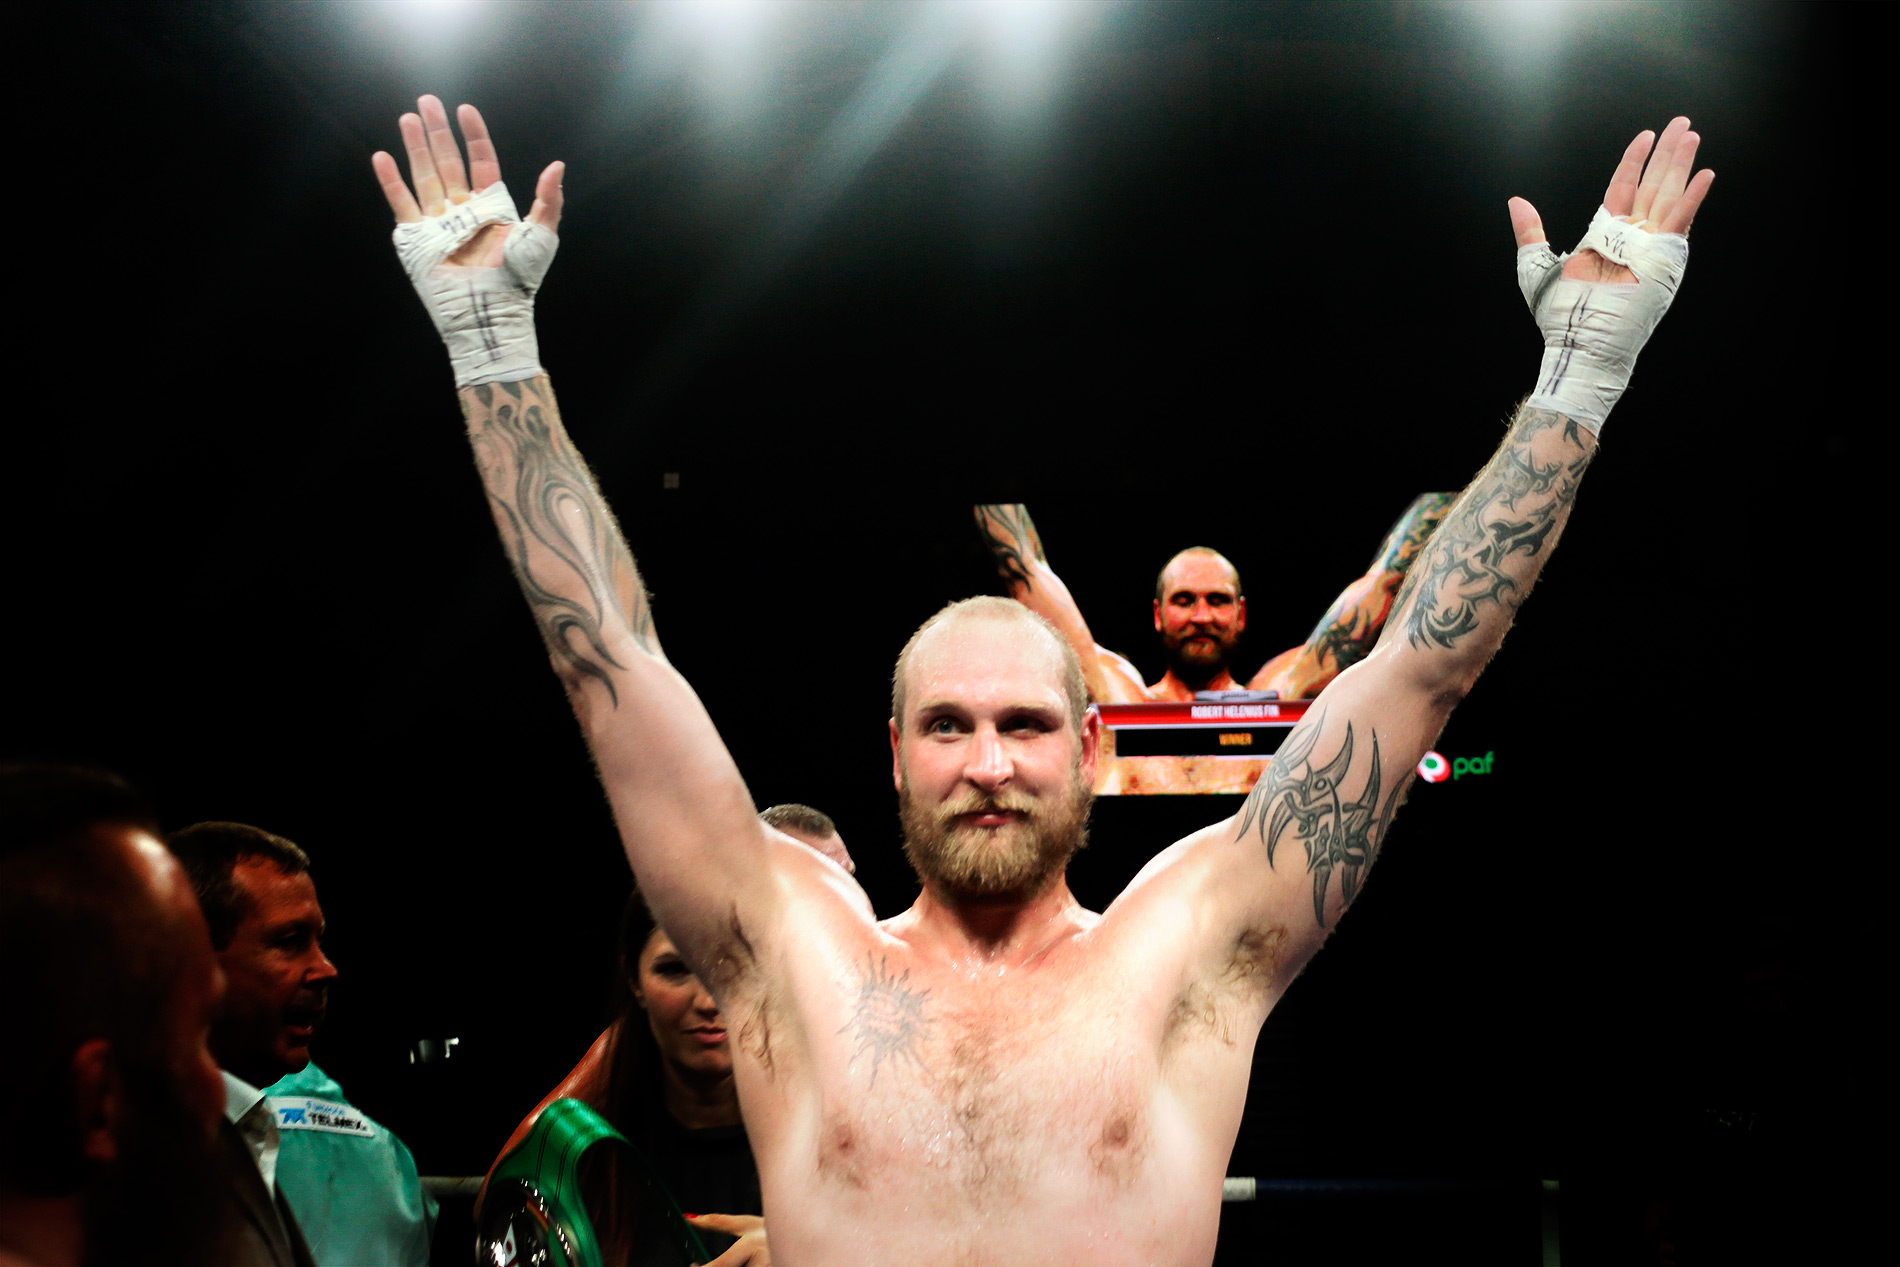 Finnish Heavyweight Boxer Robert Helenius Knocks Down His Polish Opponent Kownacki in the Fourth; Helenius Earns a Shot at the Title